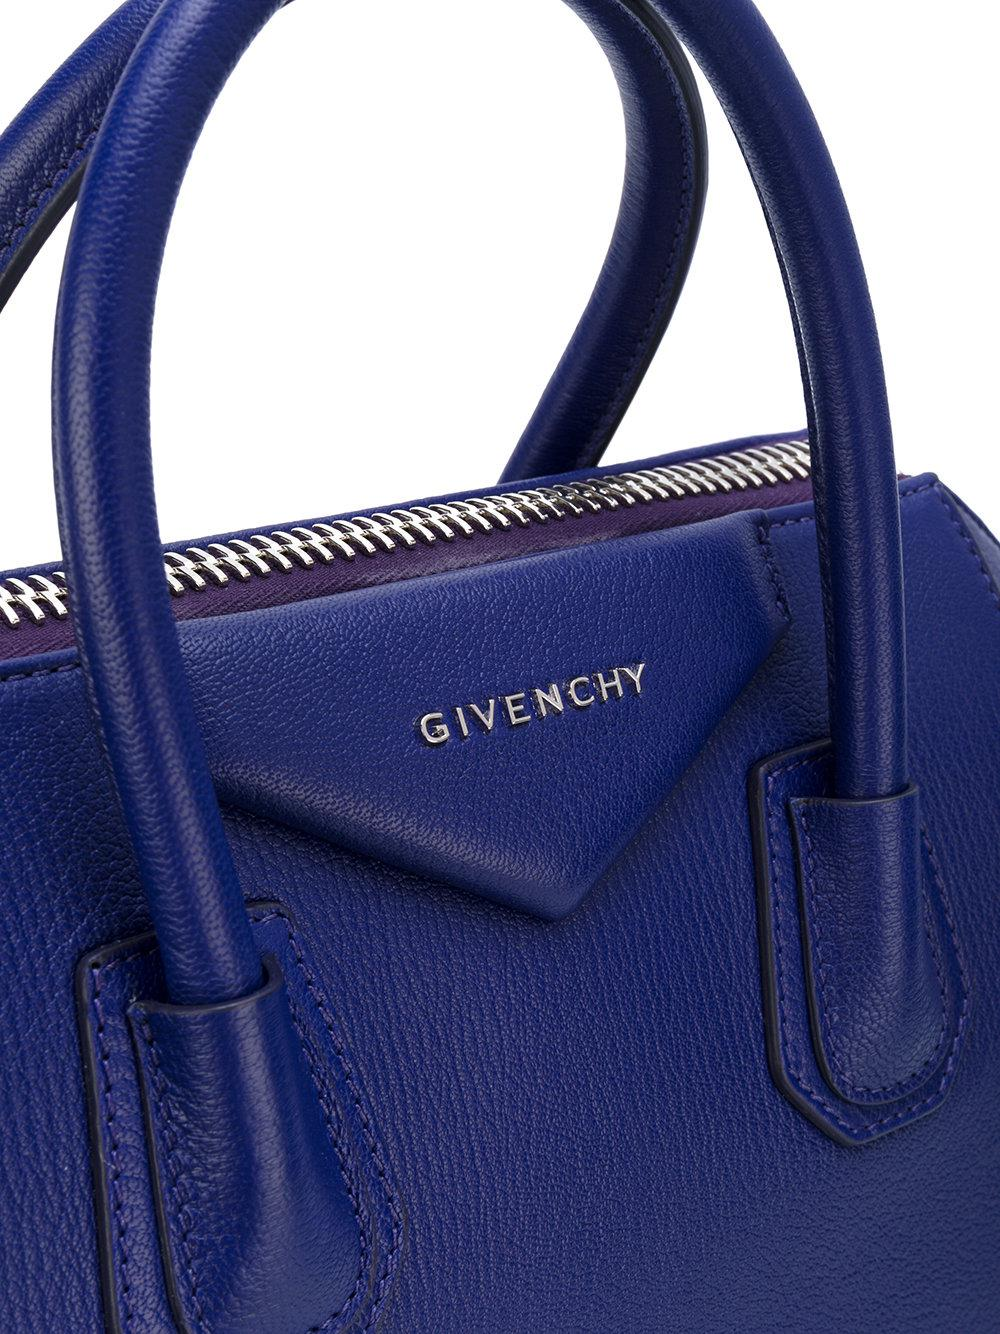 Givenchy Small Antigona Leather Bag in Blue - Save 6.603773584905667% - Lyst 375923820d